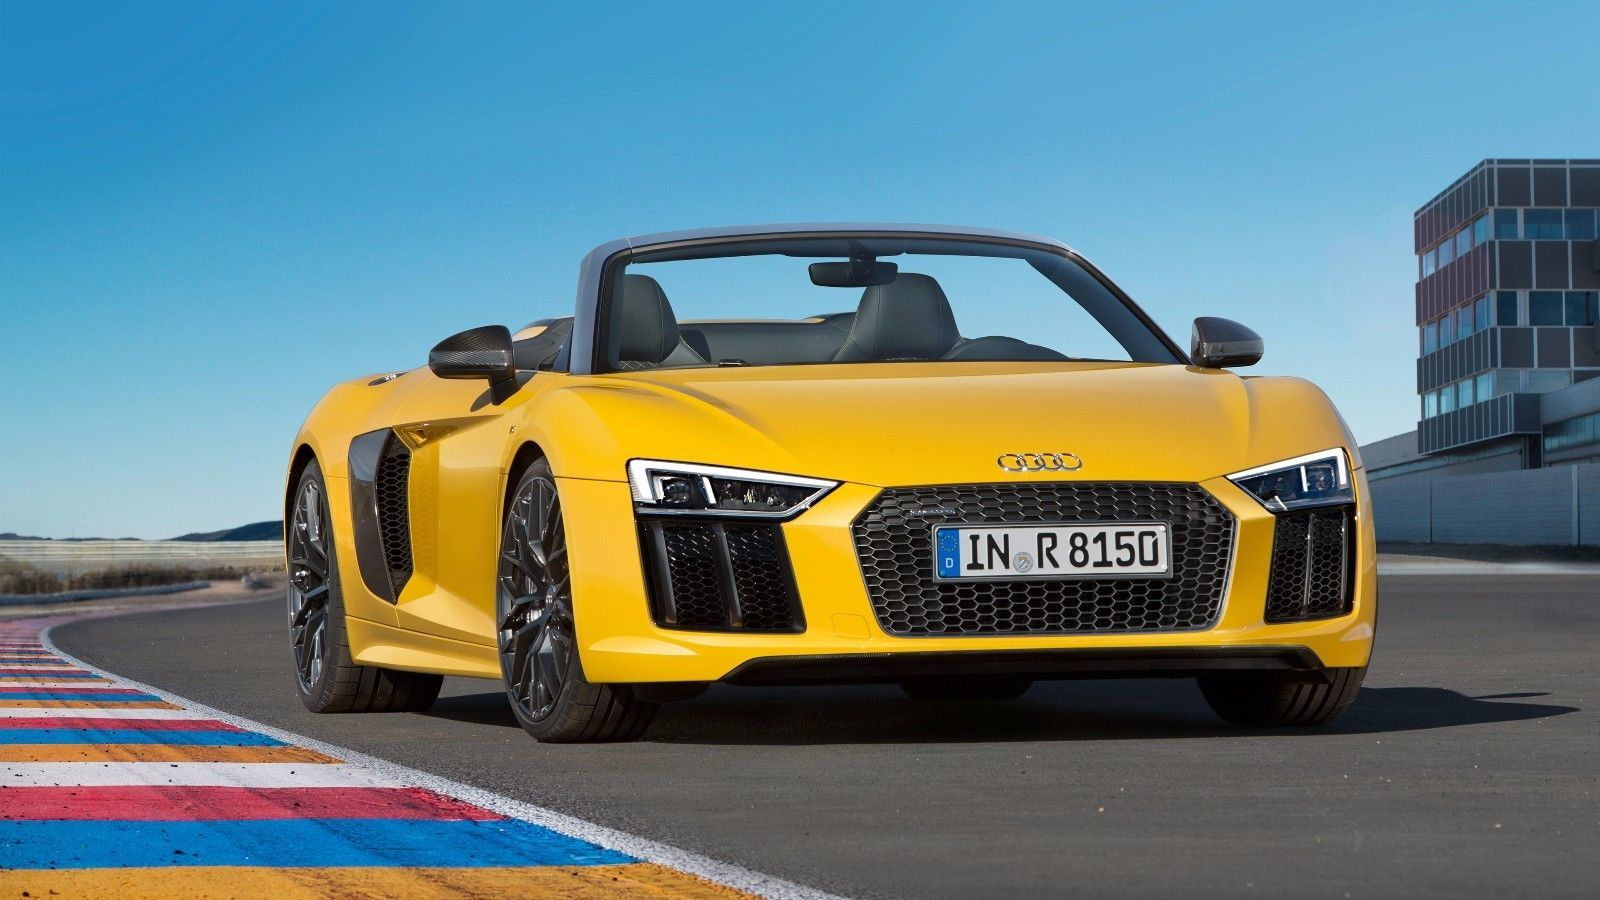 Primary image for 2017 Audi r8 Spyder v10 yellow 24X36 inch poster, sports car